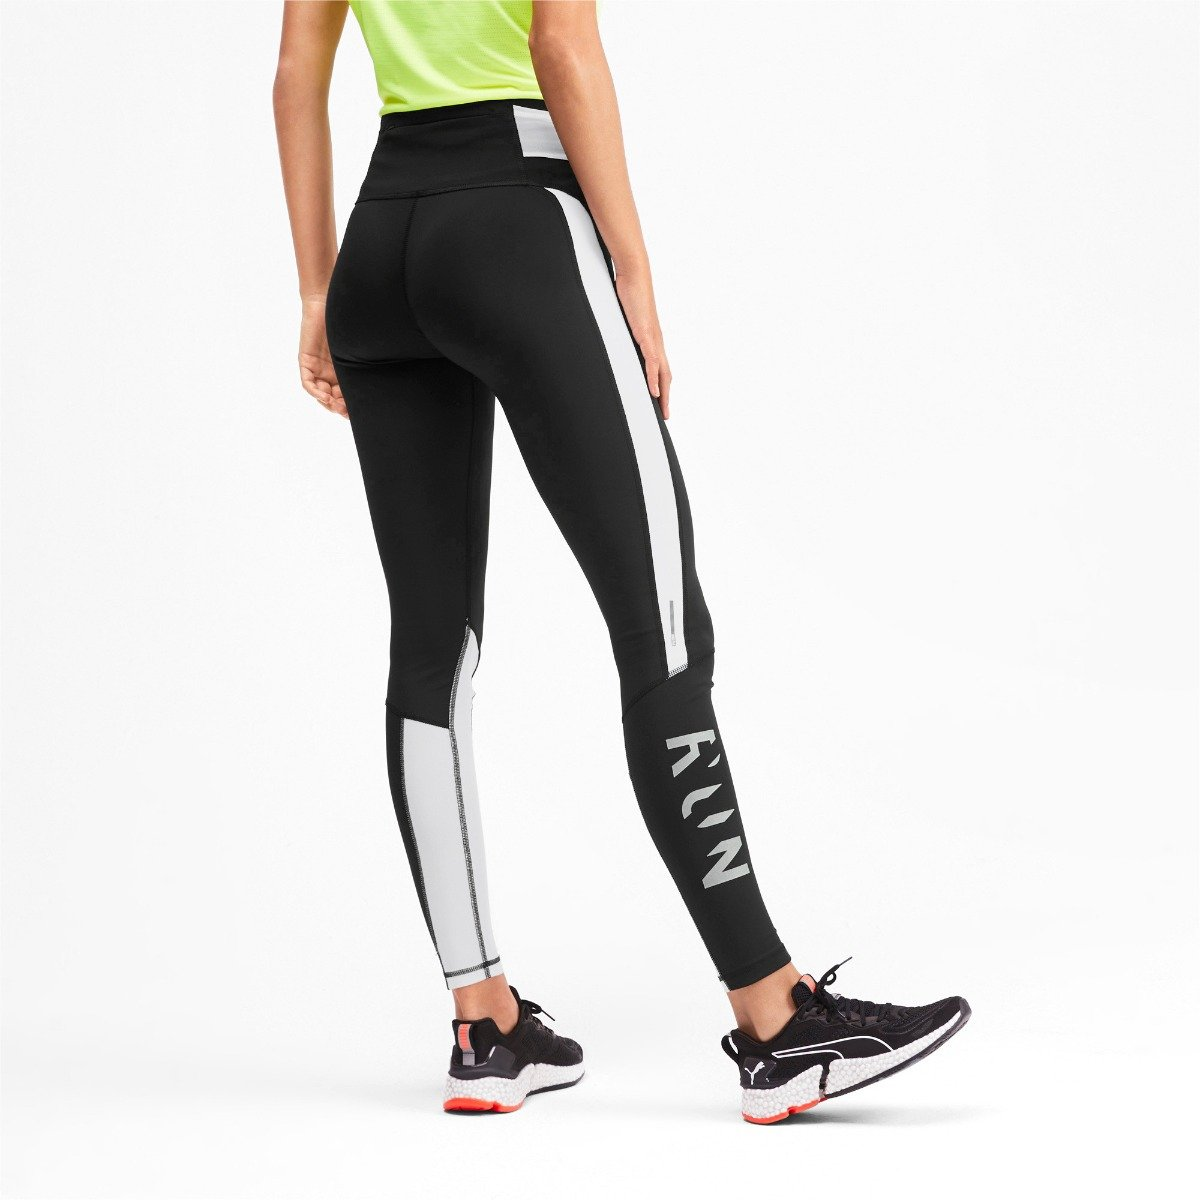 Puma Get Fast Thermo R+ Tight dame